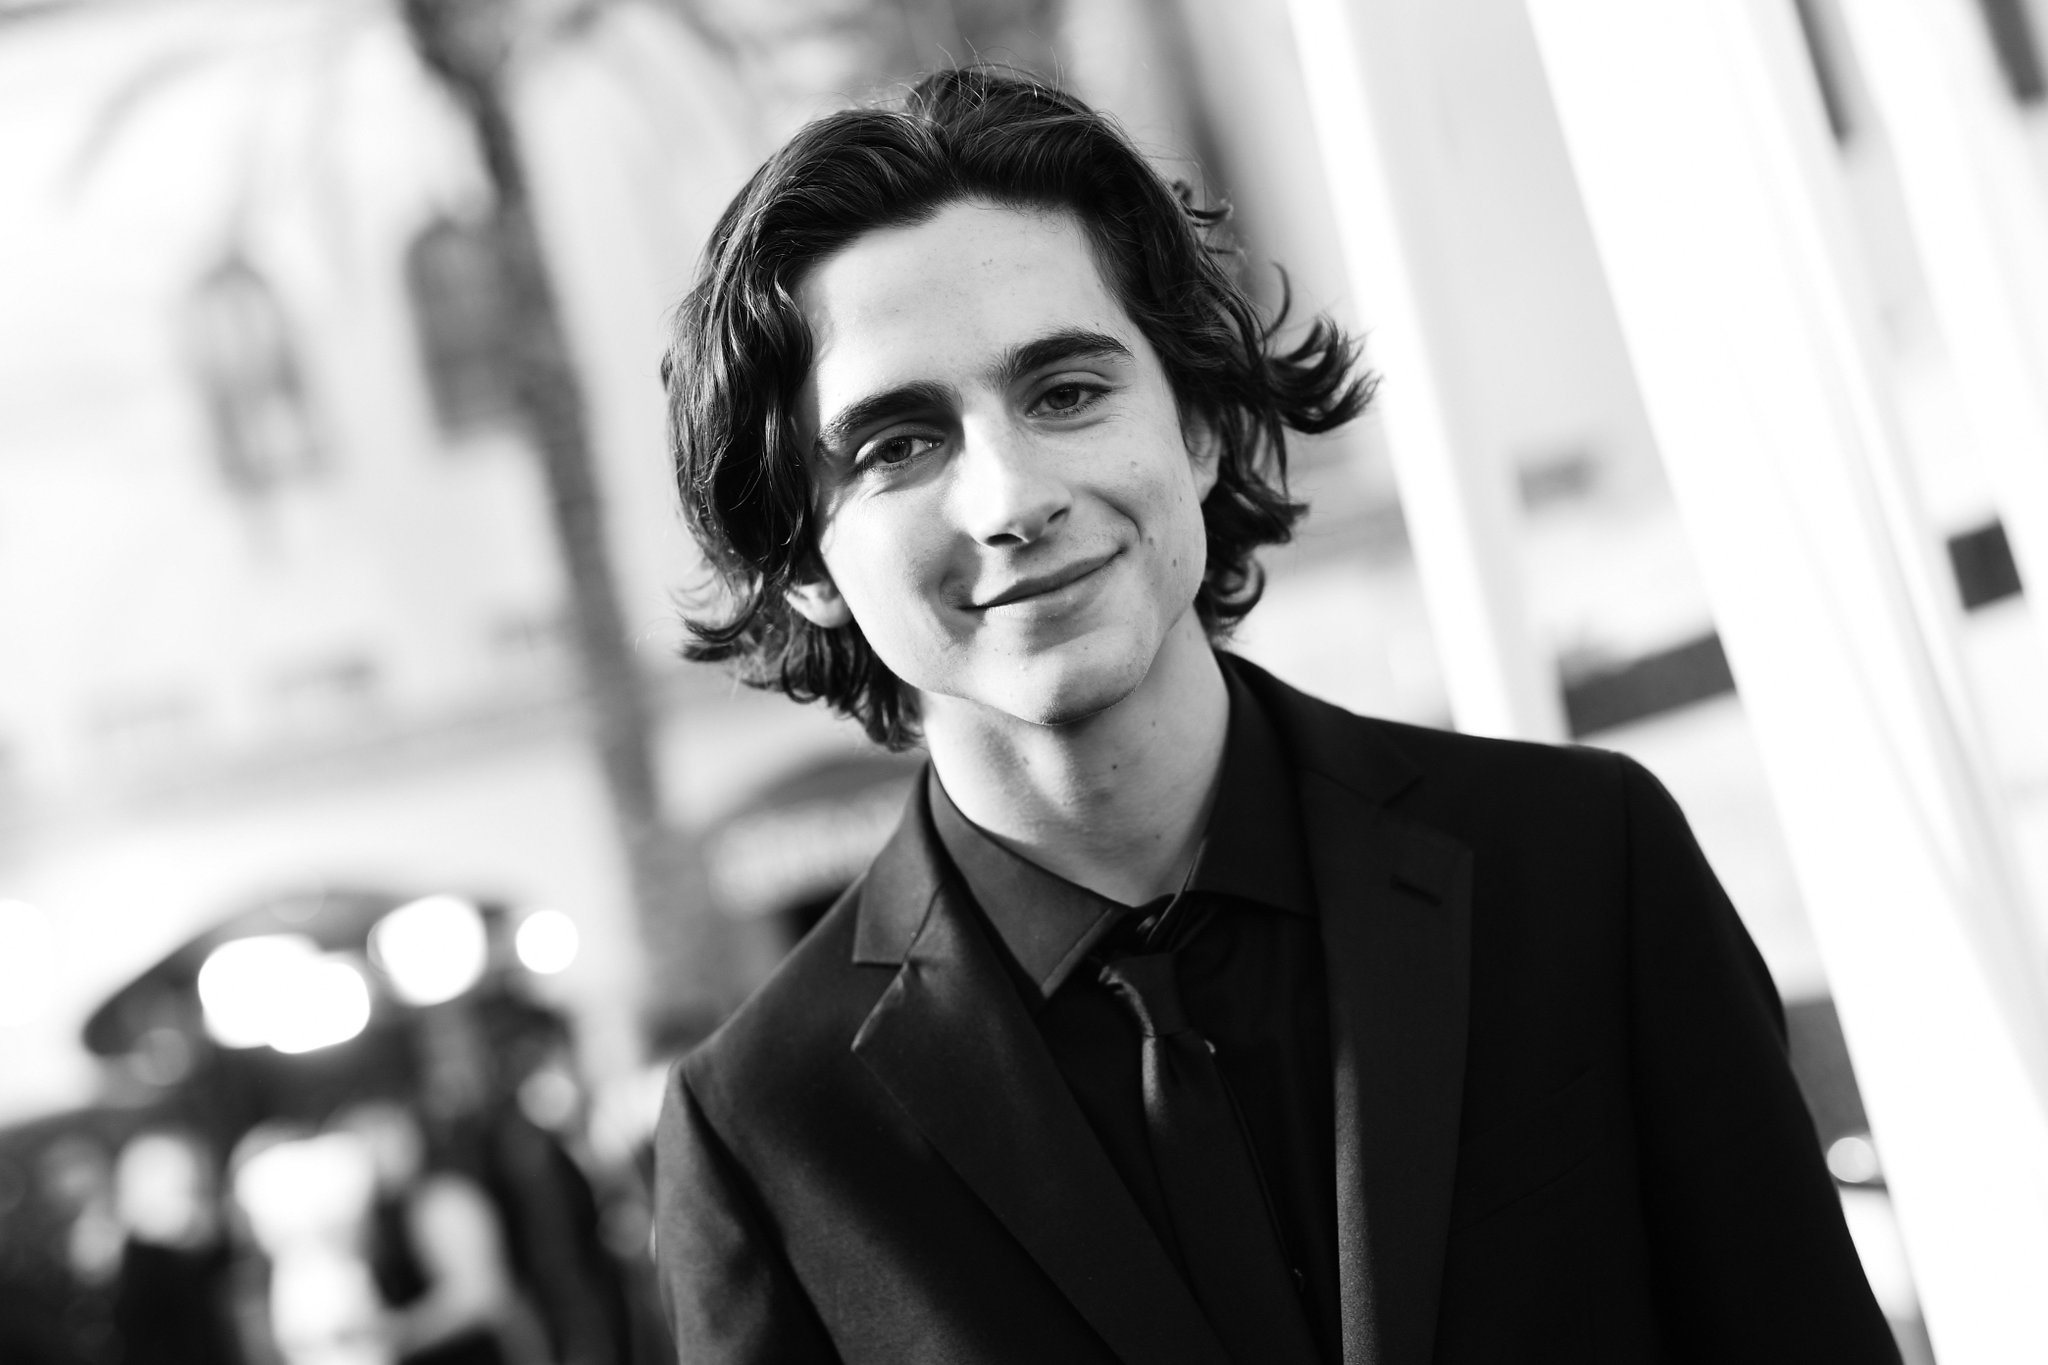 Trying to make your Monday a little better with these photos of @RealChalamet �� https://t.co/48v58XdZyh